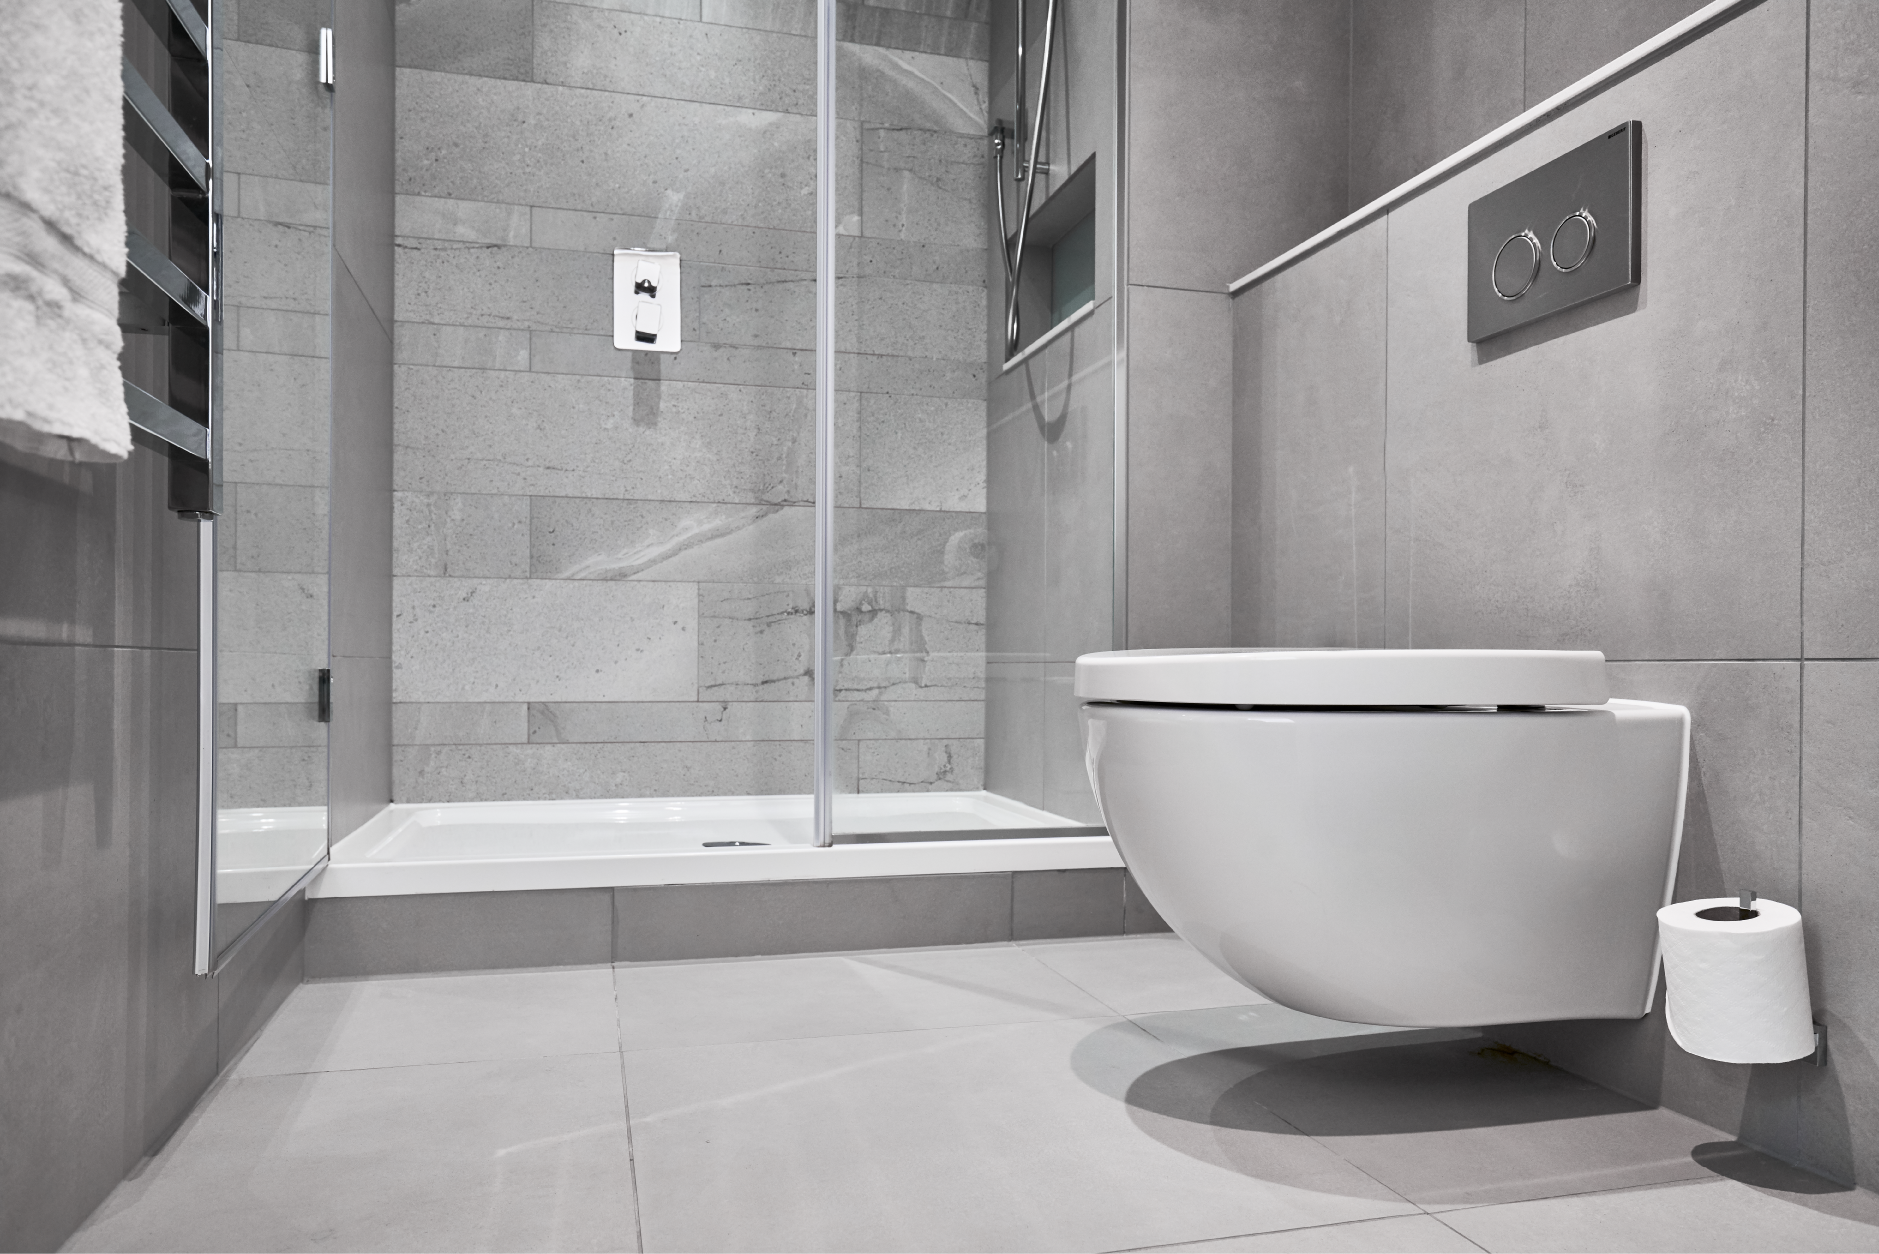 Bathroom at CitySuites Manchester - Citybase Apartments